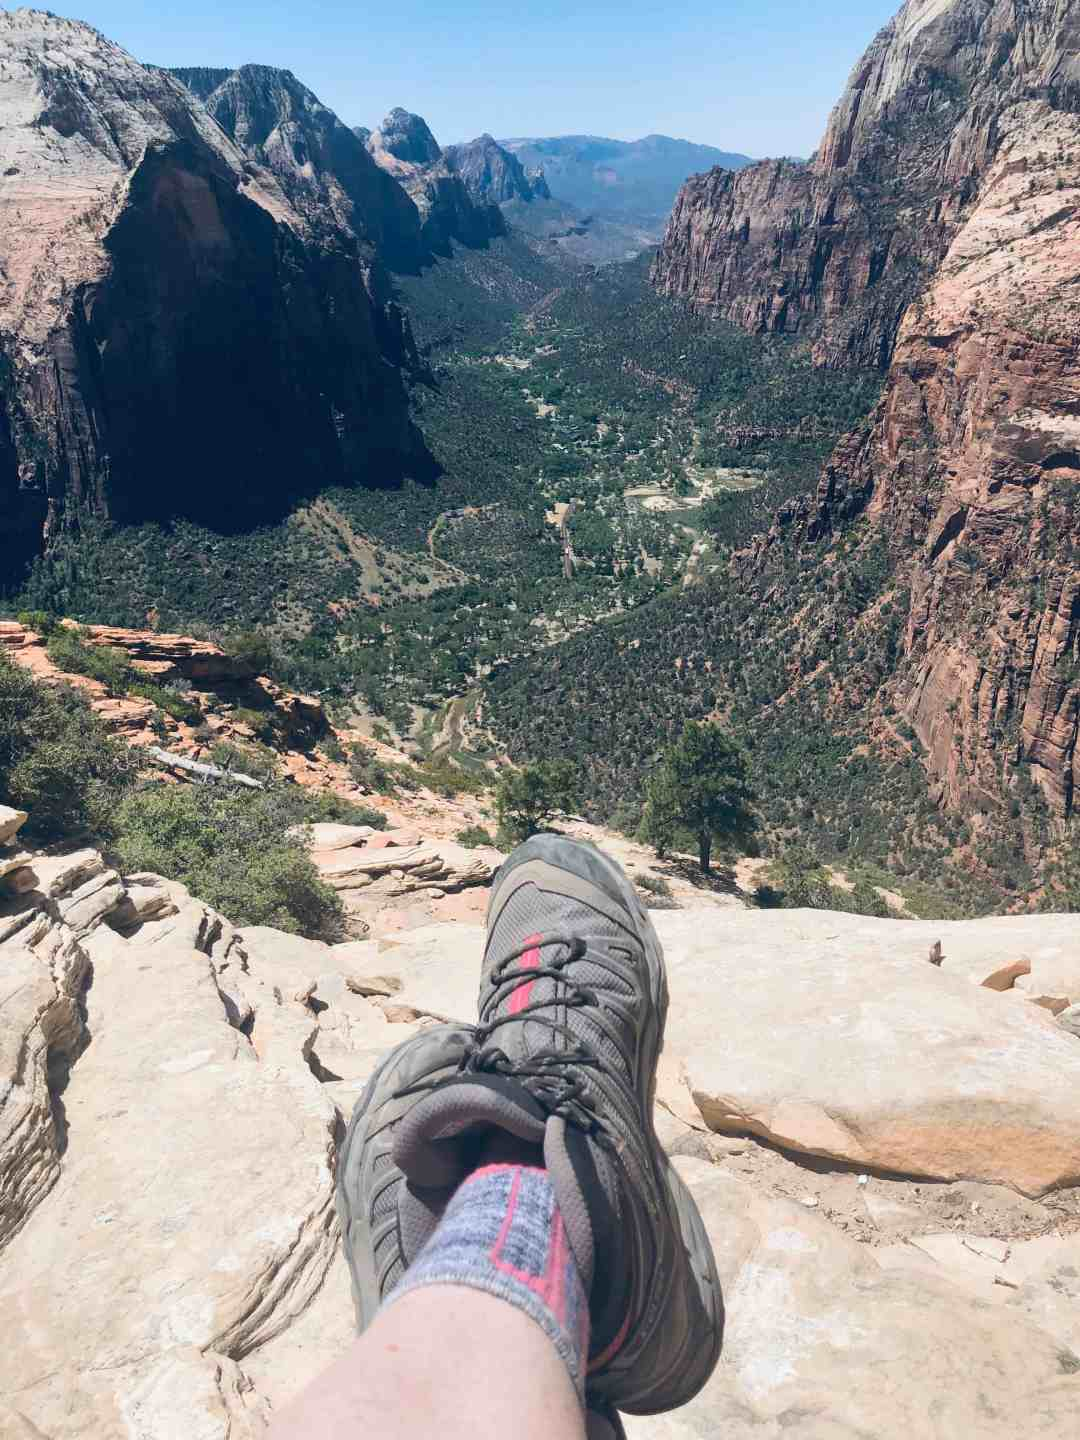 Angels Landing view from the top